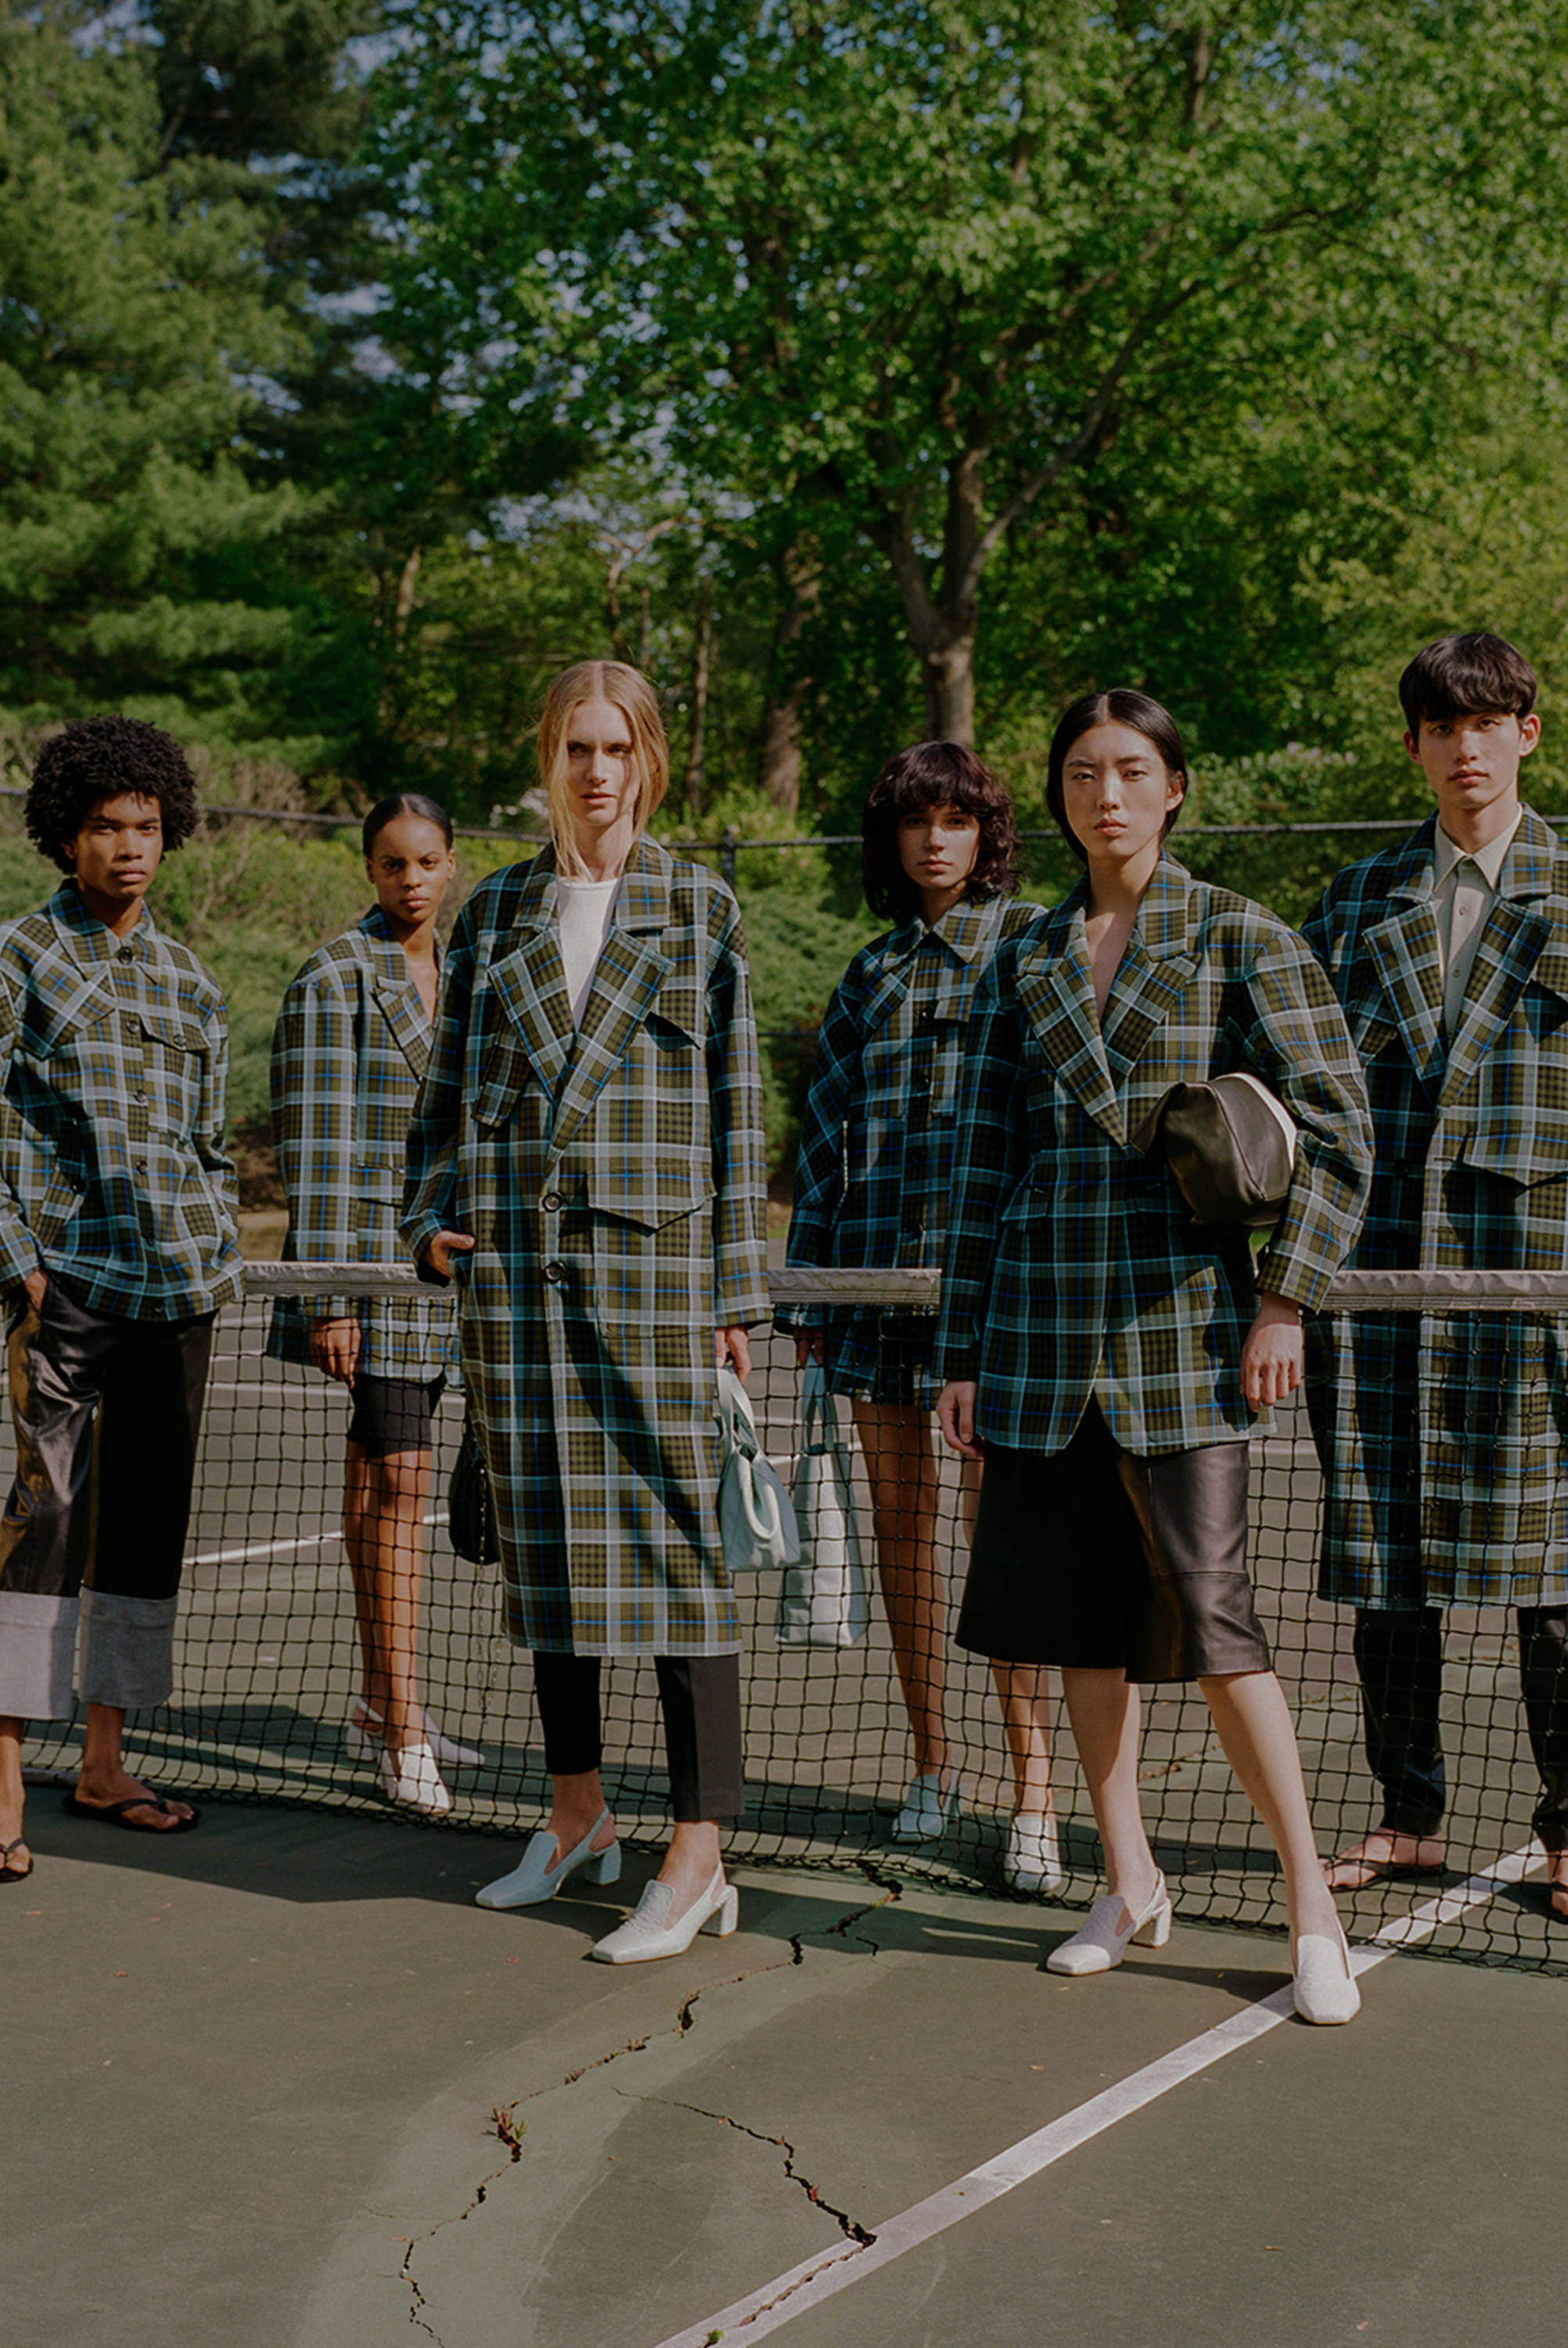 Group of models wearing spencer plaid group from Resort 2020.